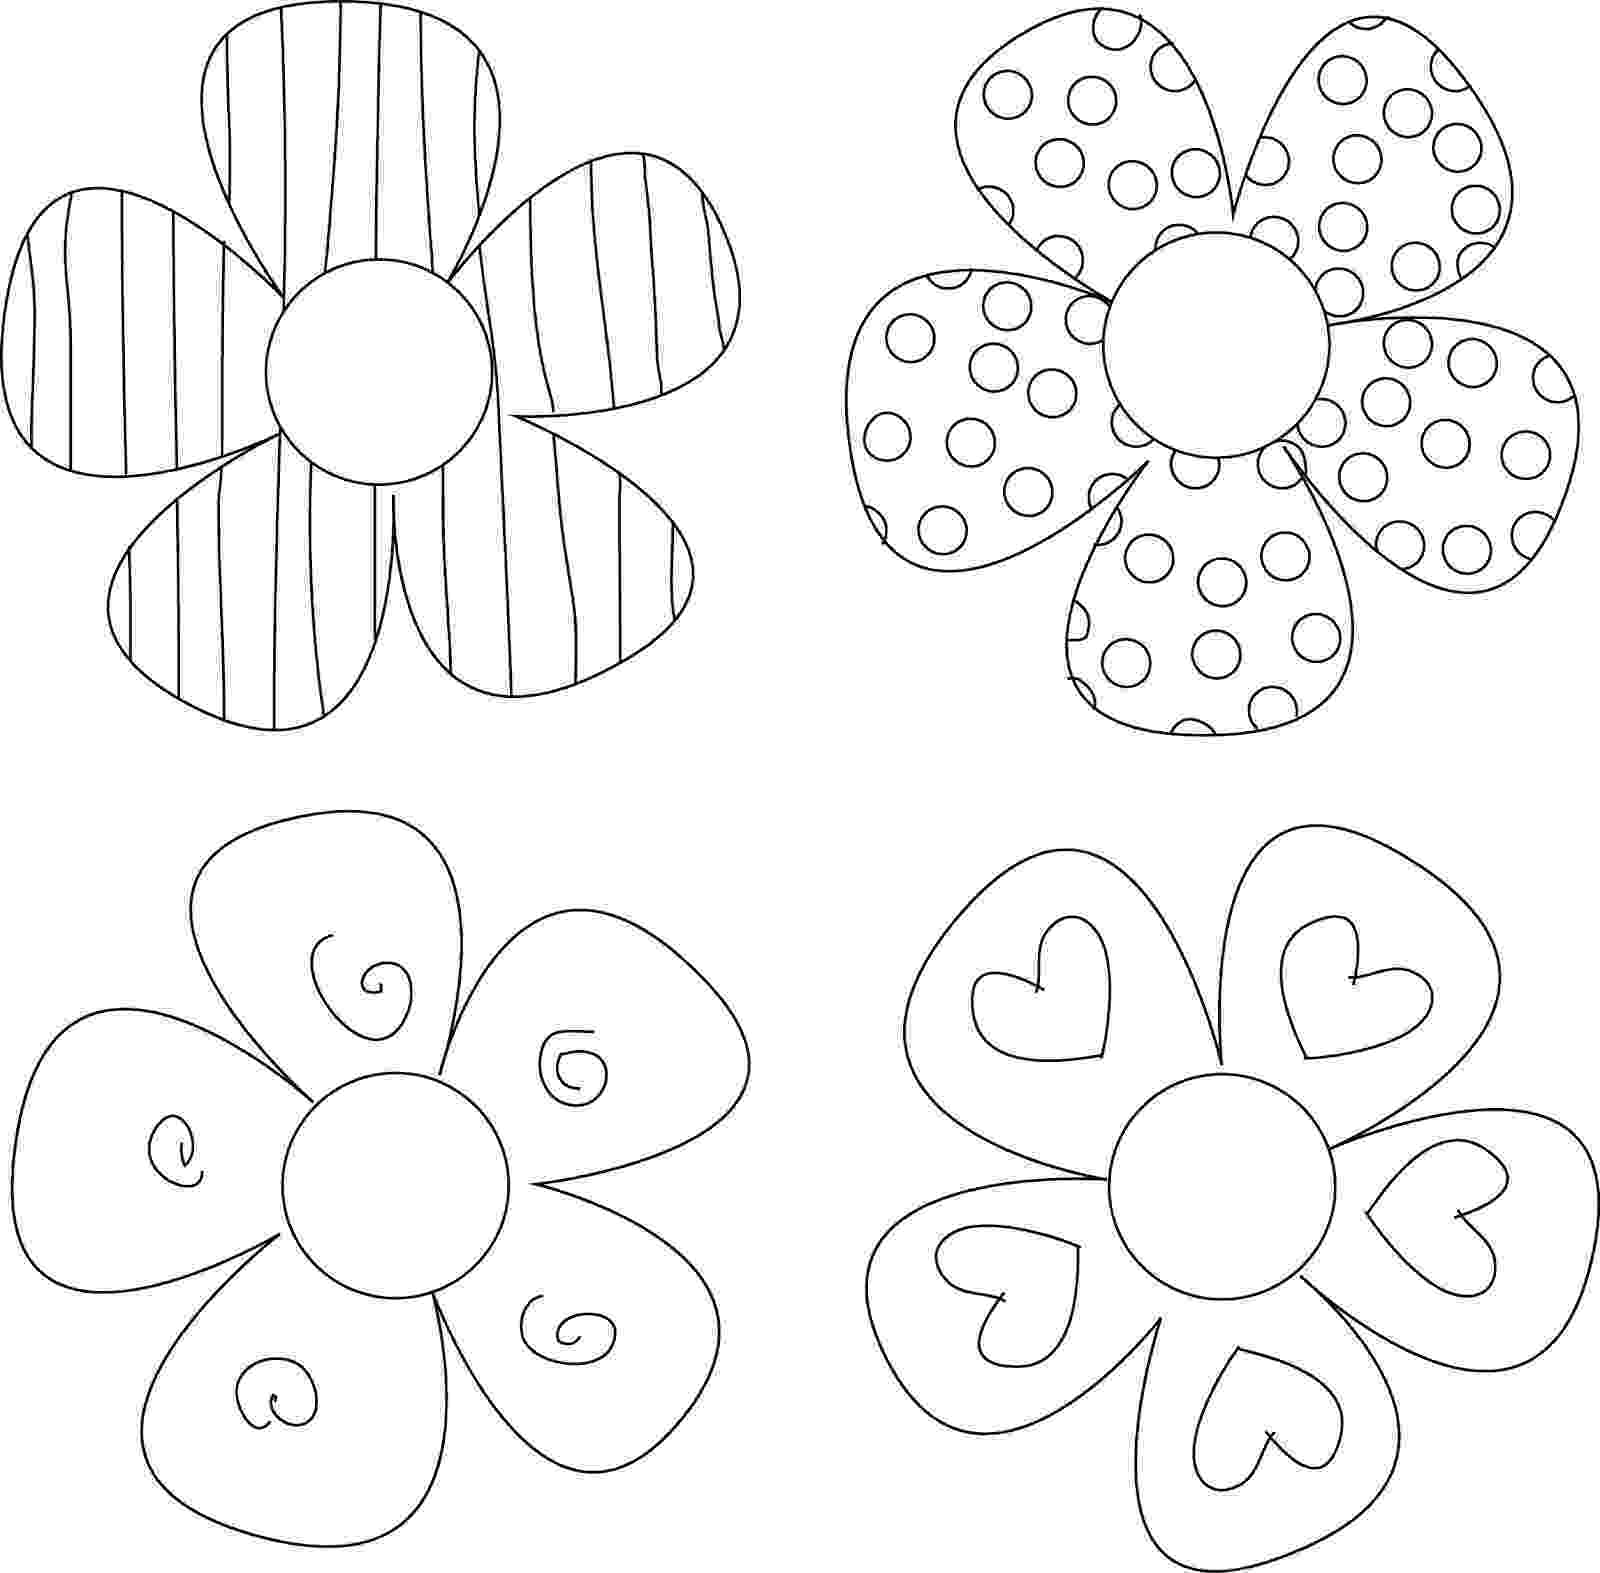 flower templates for coloring flower lei templates free printable templates coloring for flower coloring templates